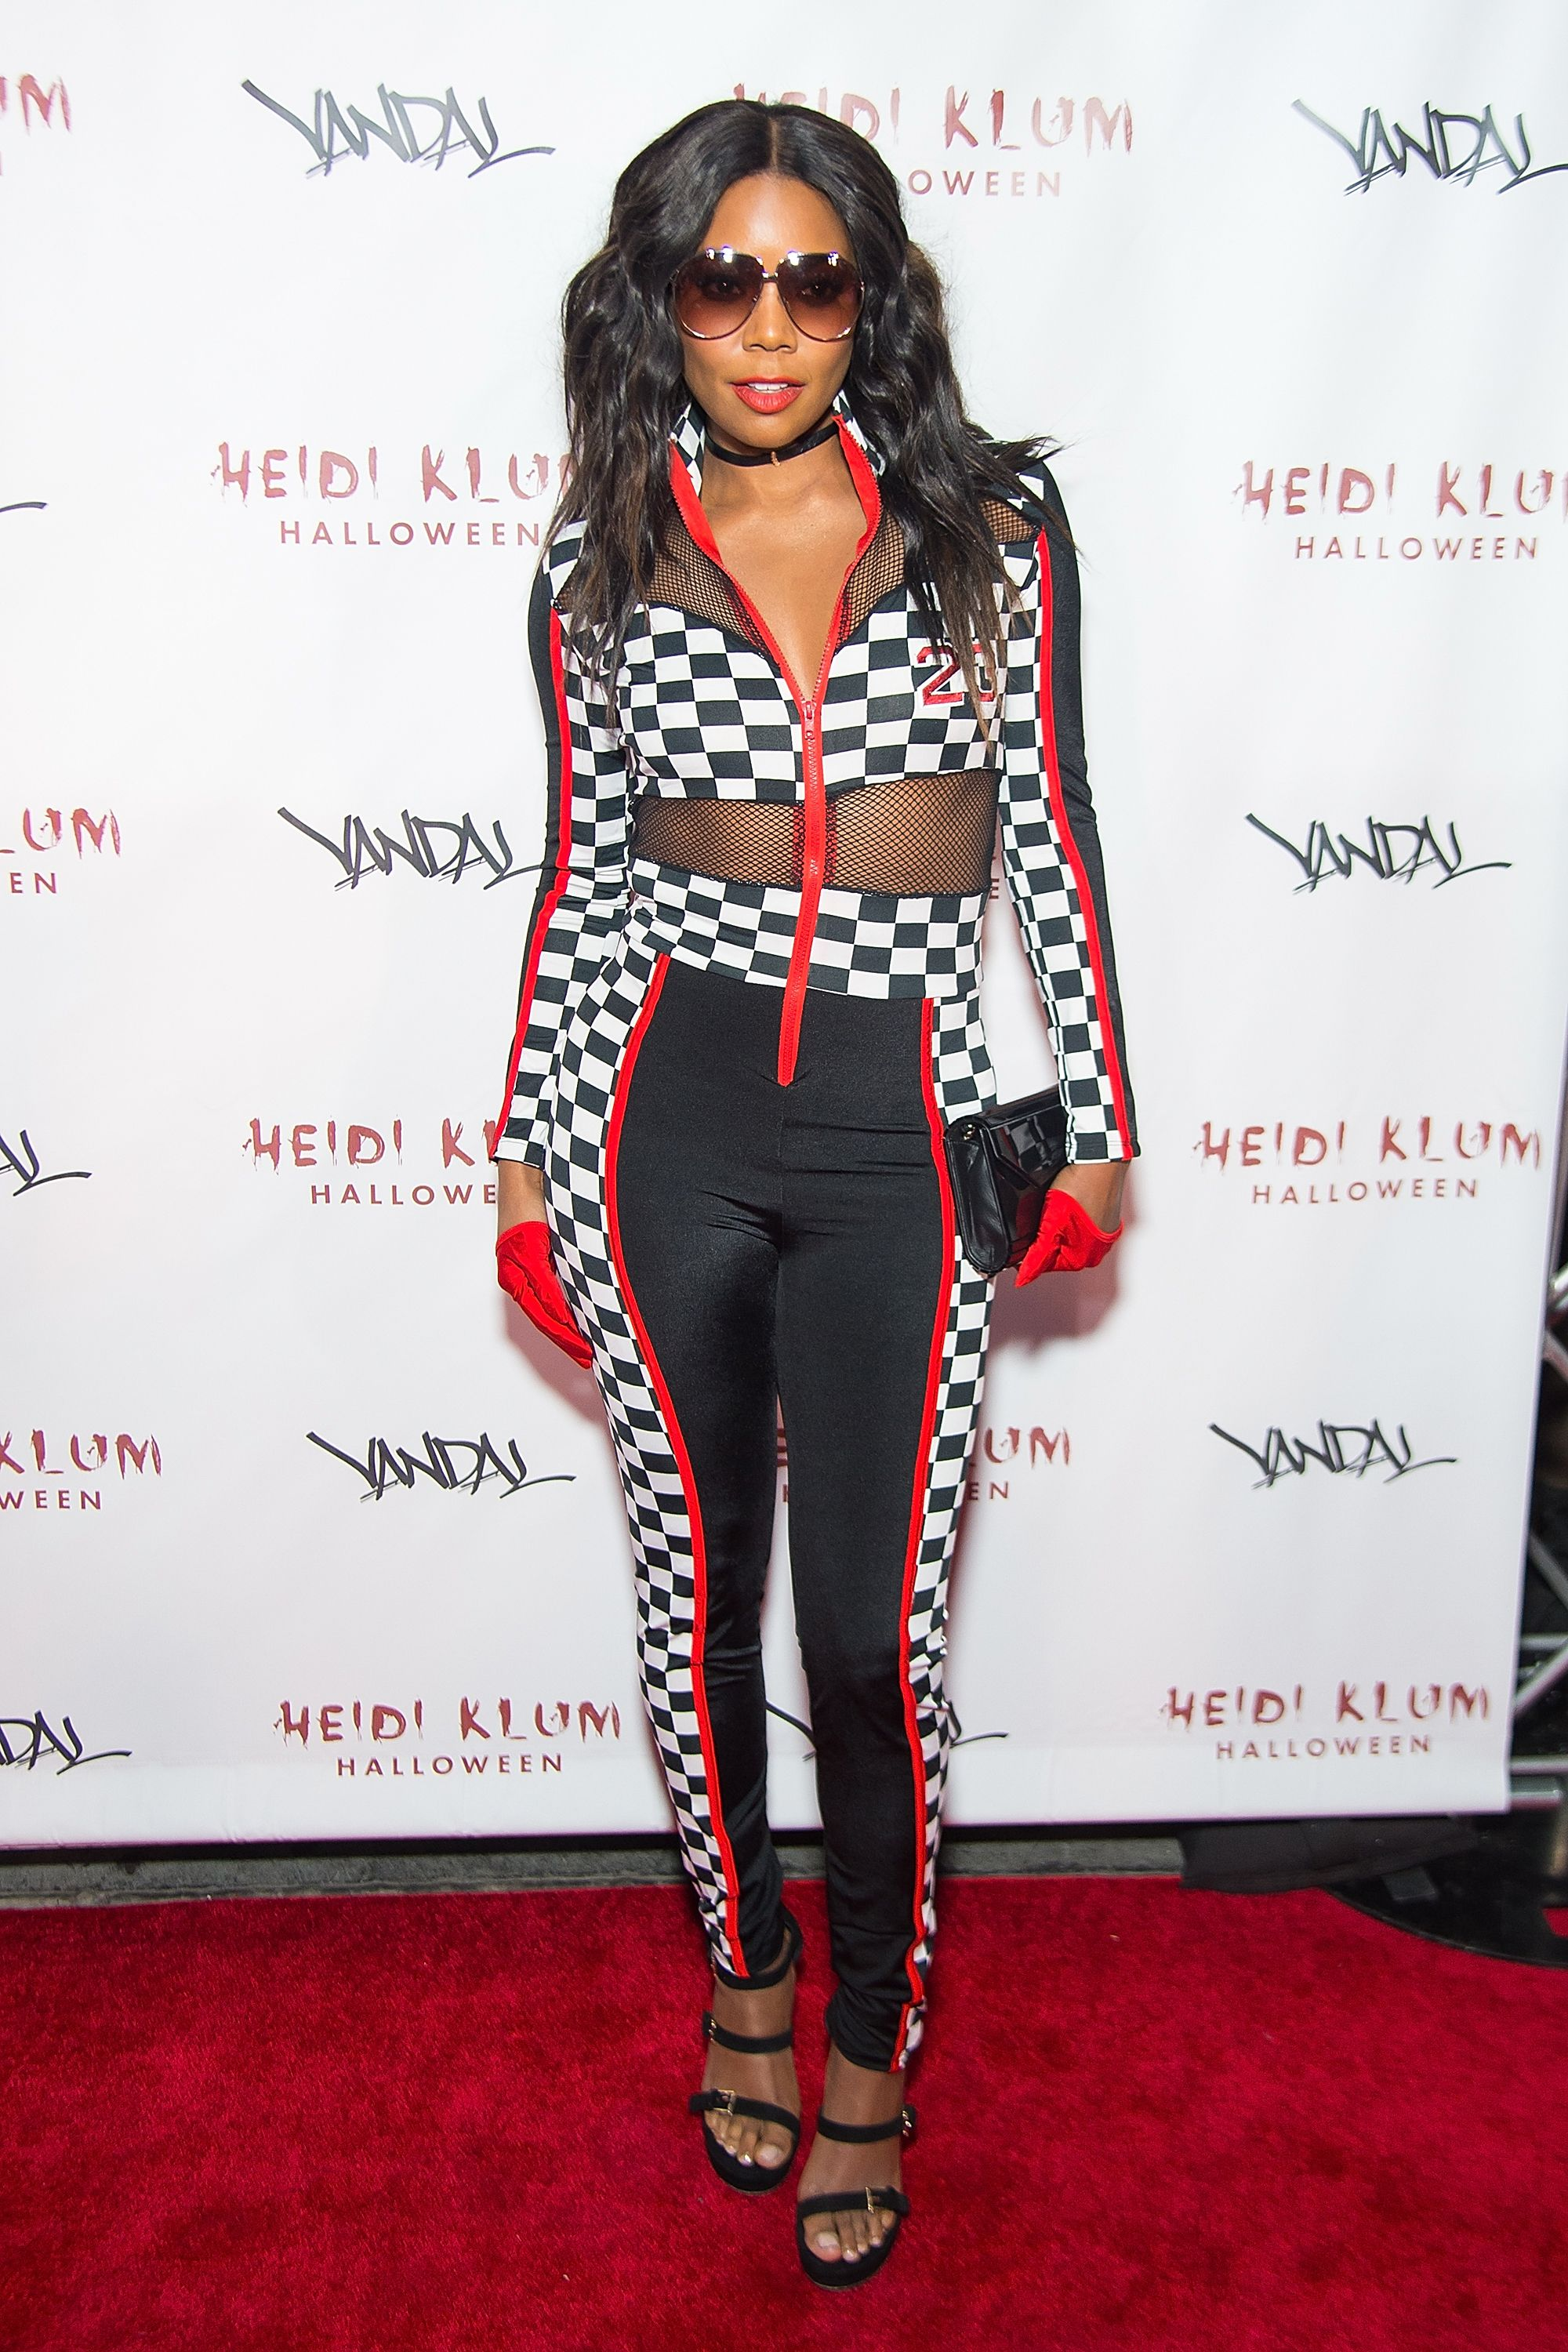 <p>Actress Gabrielle Union dressed up the race car driver look with some heels and sassy sunglasses for her Halloween evening in 2016.</p>